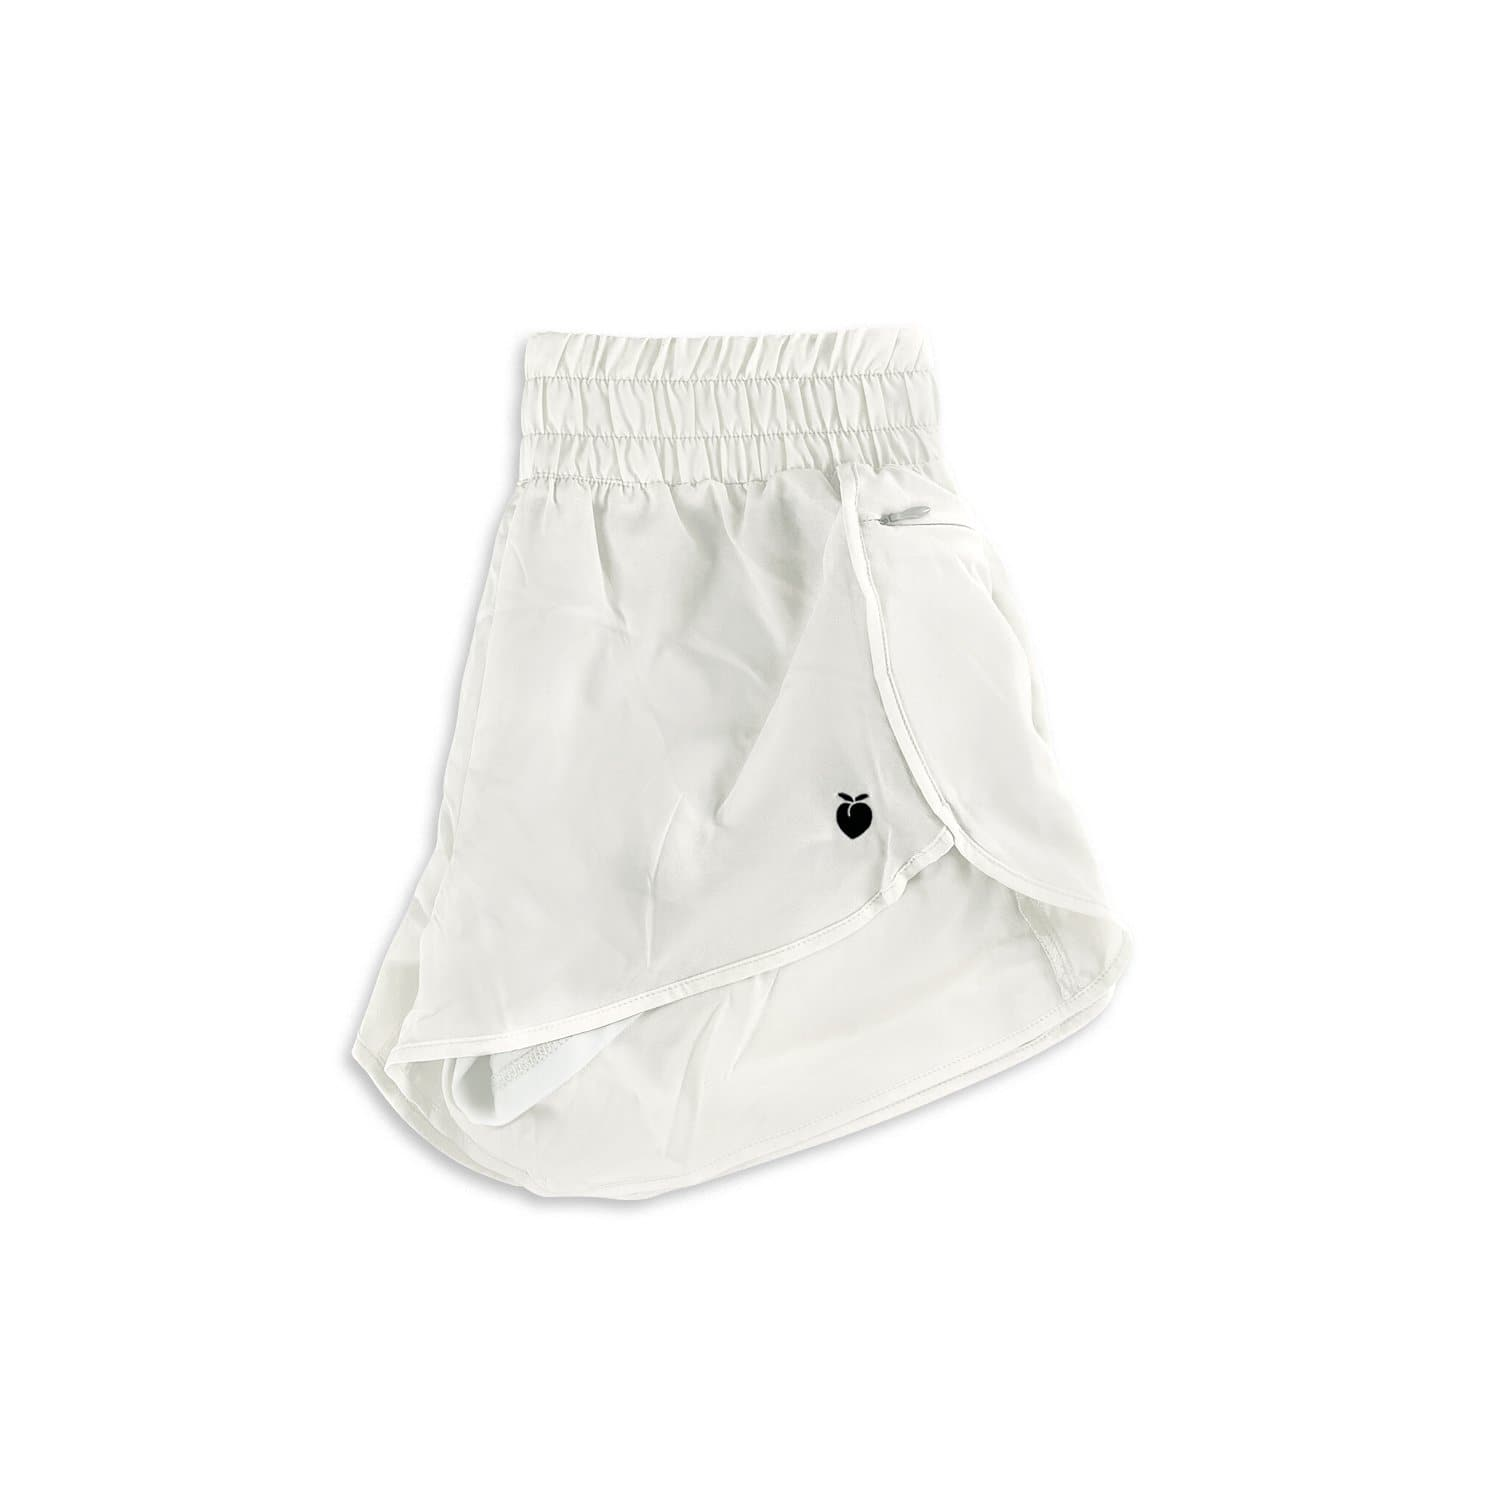 Women's Liner Track Shorts - White